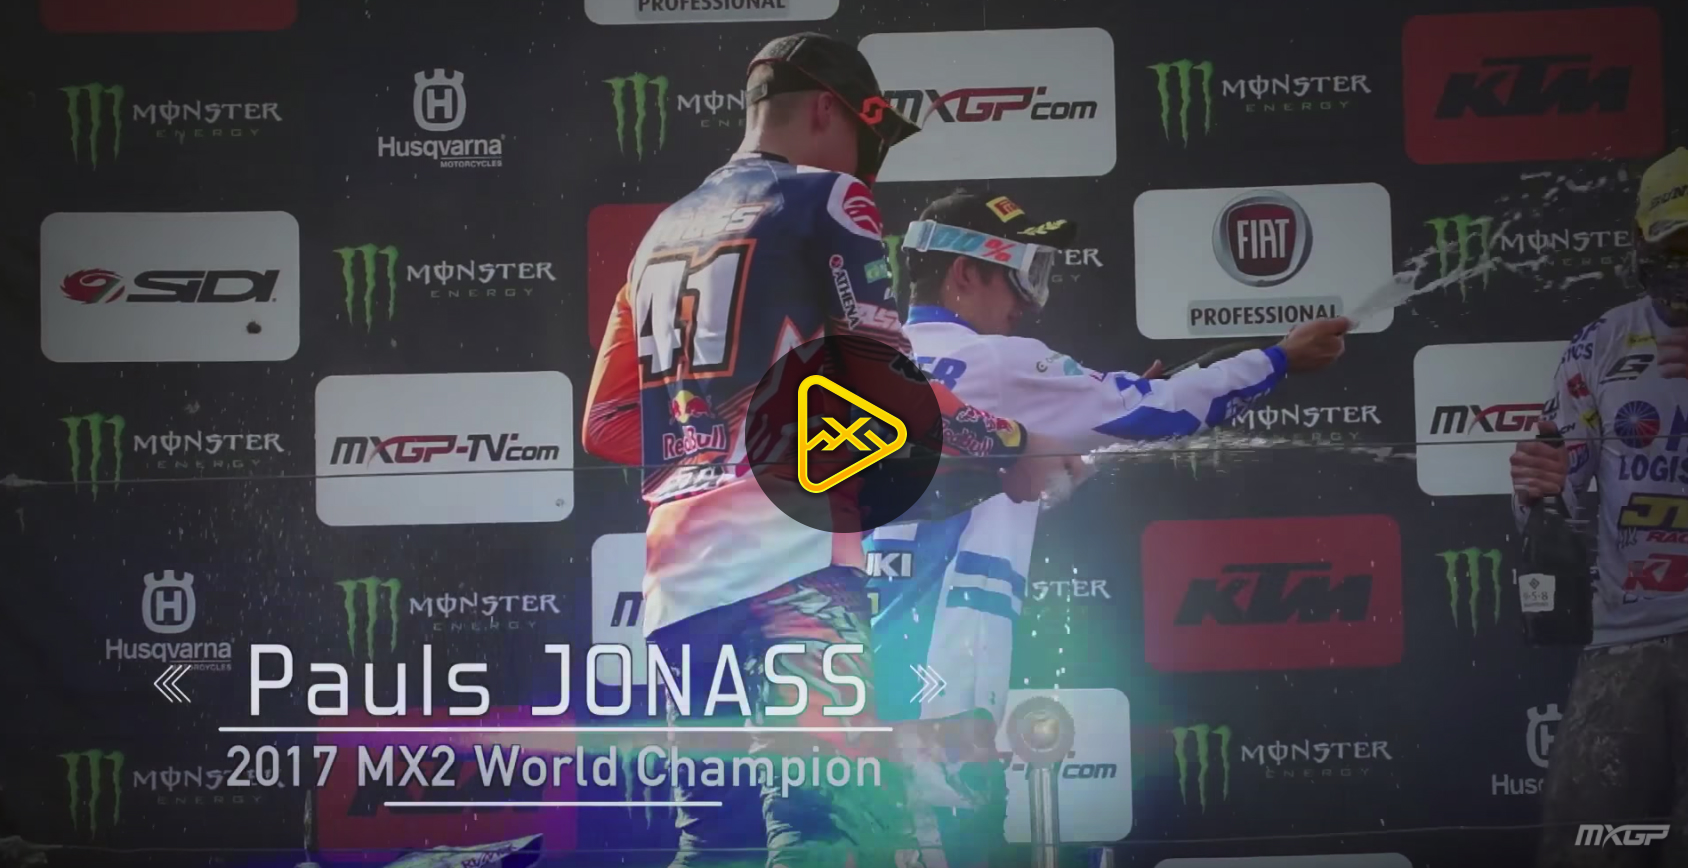 Pauls Jonass – 2017 MX2 World Champion